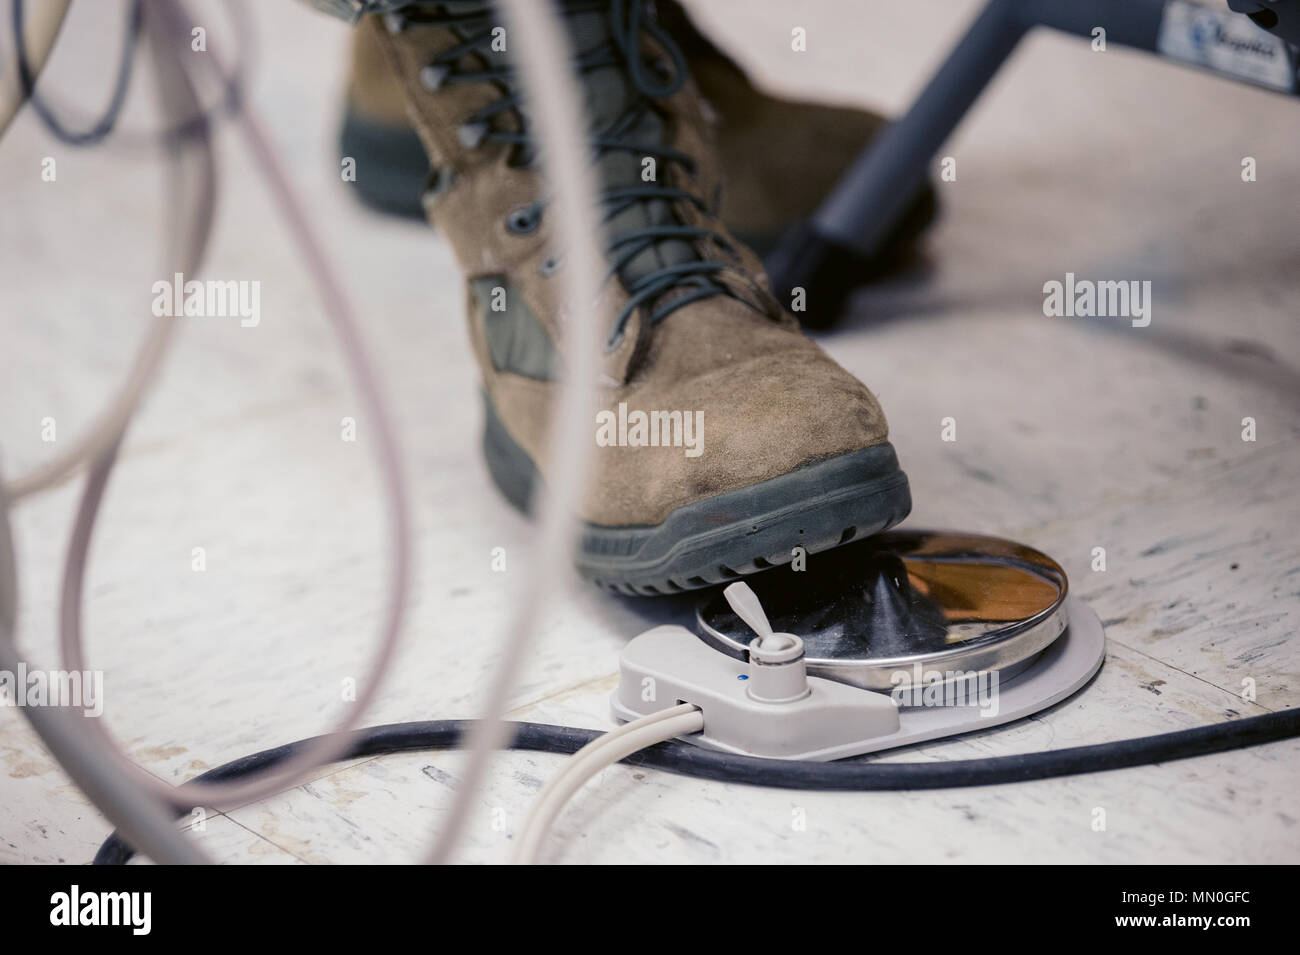 N Pedal Stock Photos & N Pedal Stock Images - Alamy